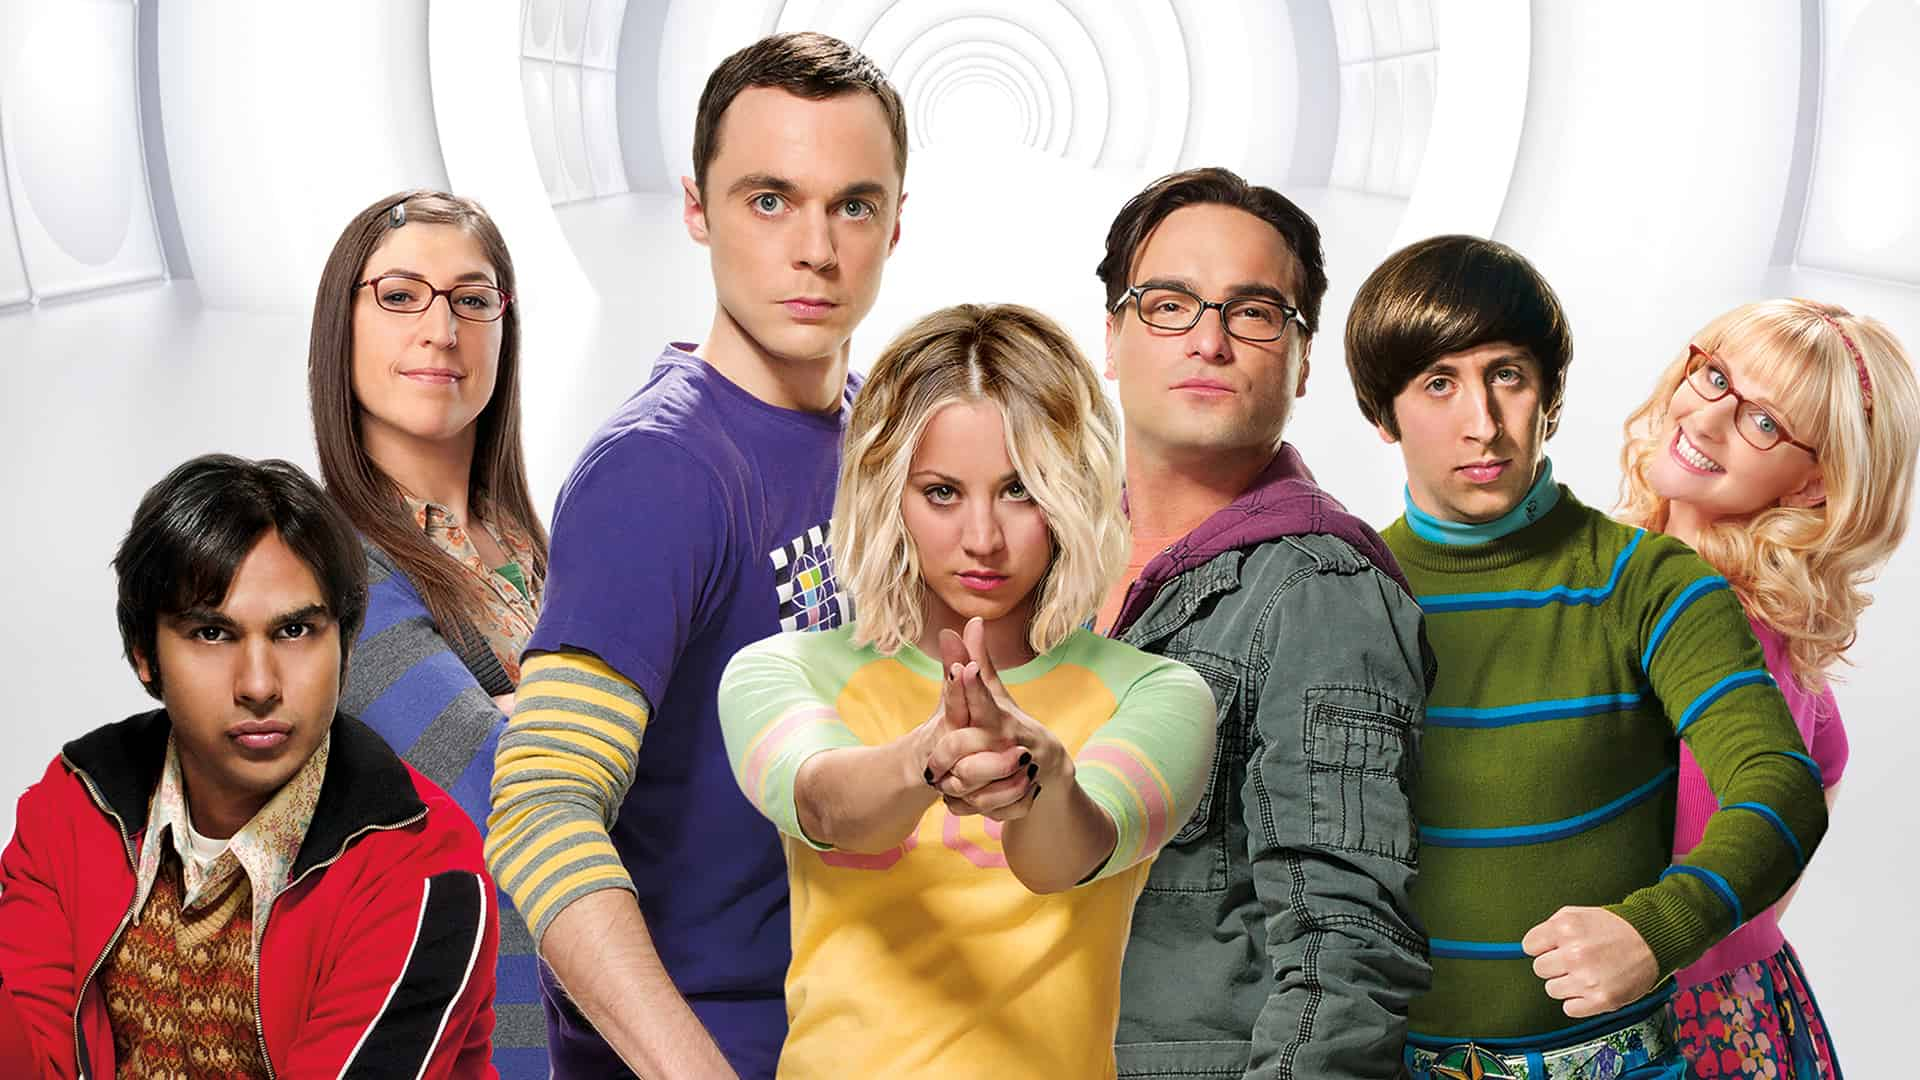 the big bang theory 2 essay The big bang theory is an american sitcom from chuck lorre productions which  airs  young sheldon returned on thursday, november 2 when the big bang.